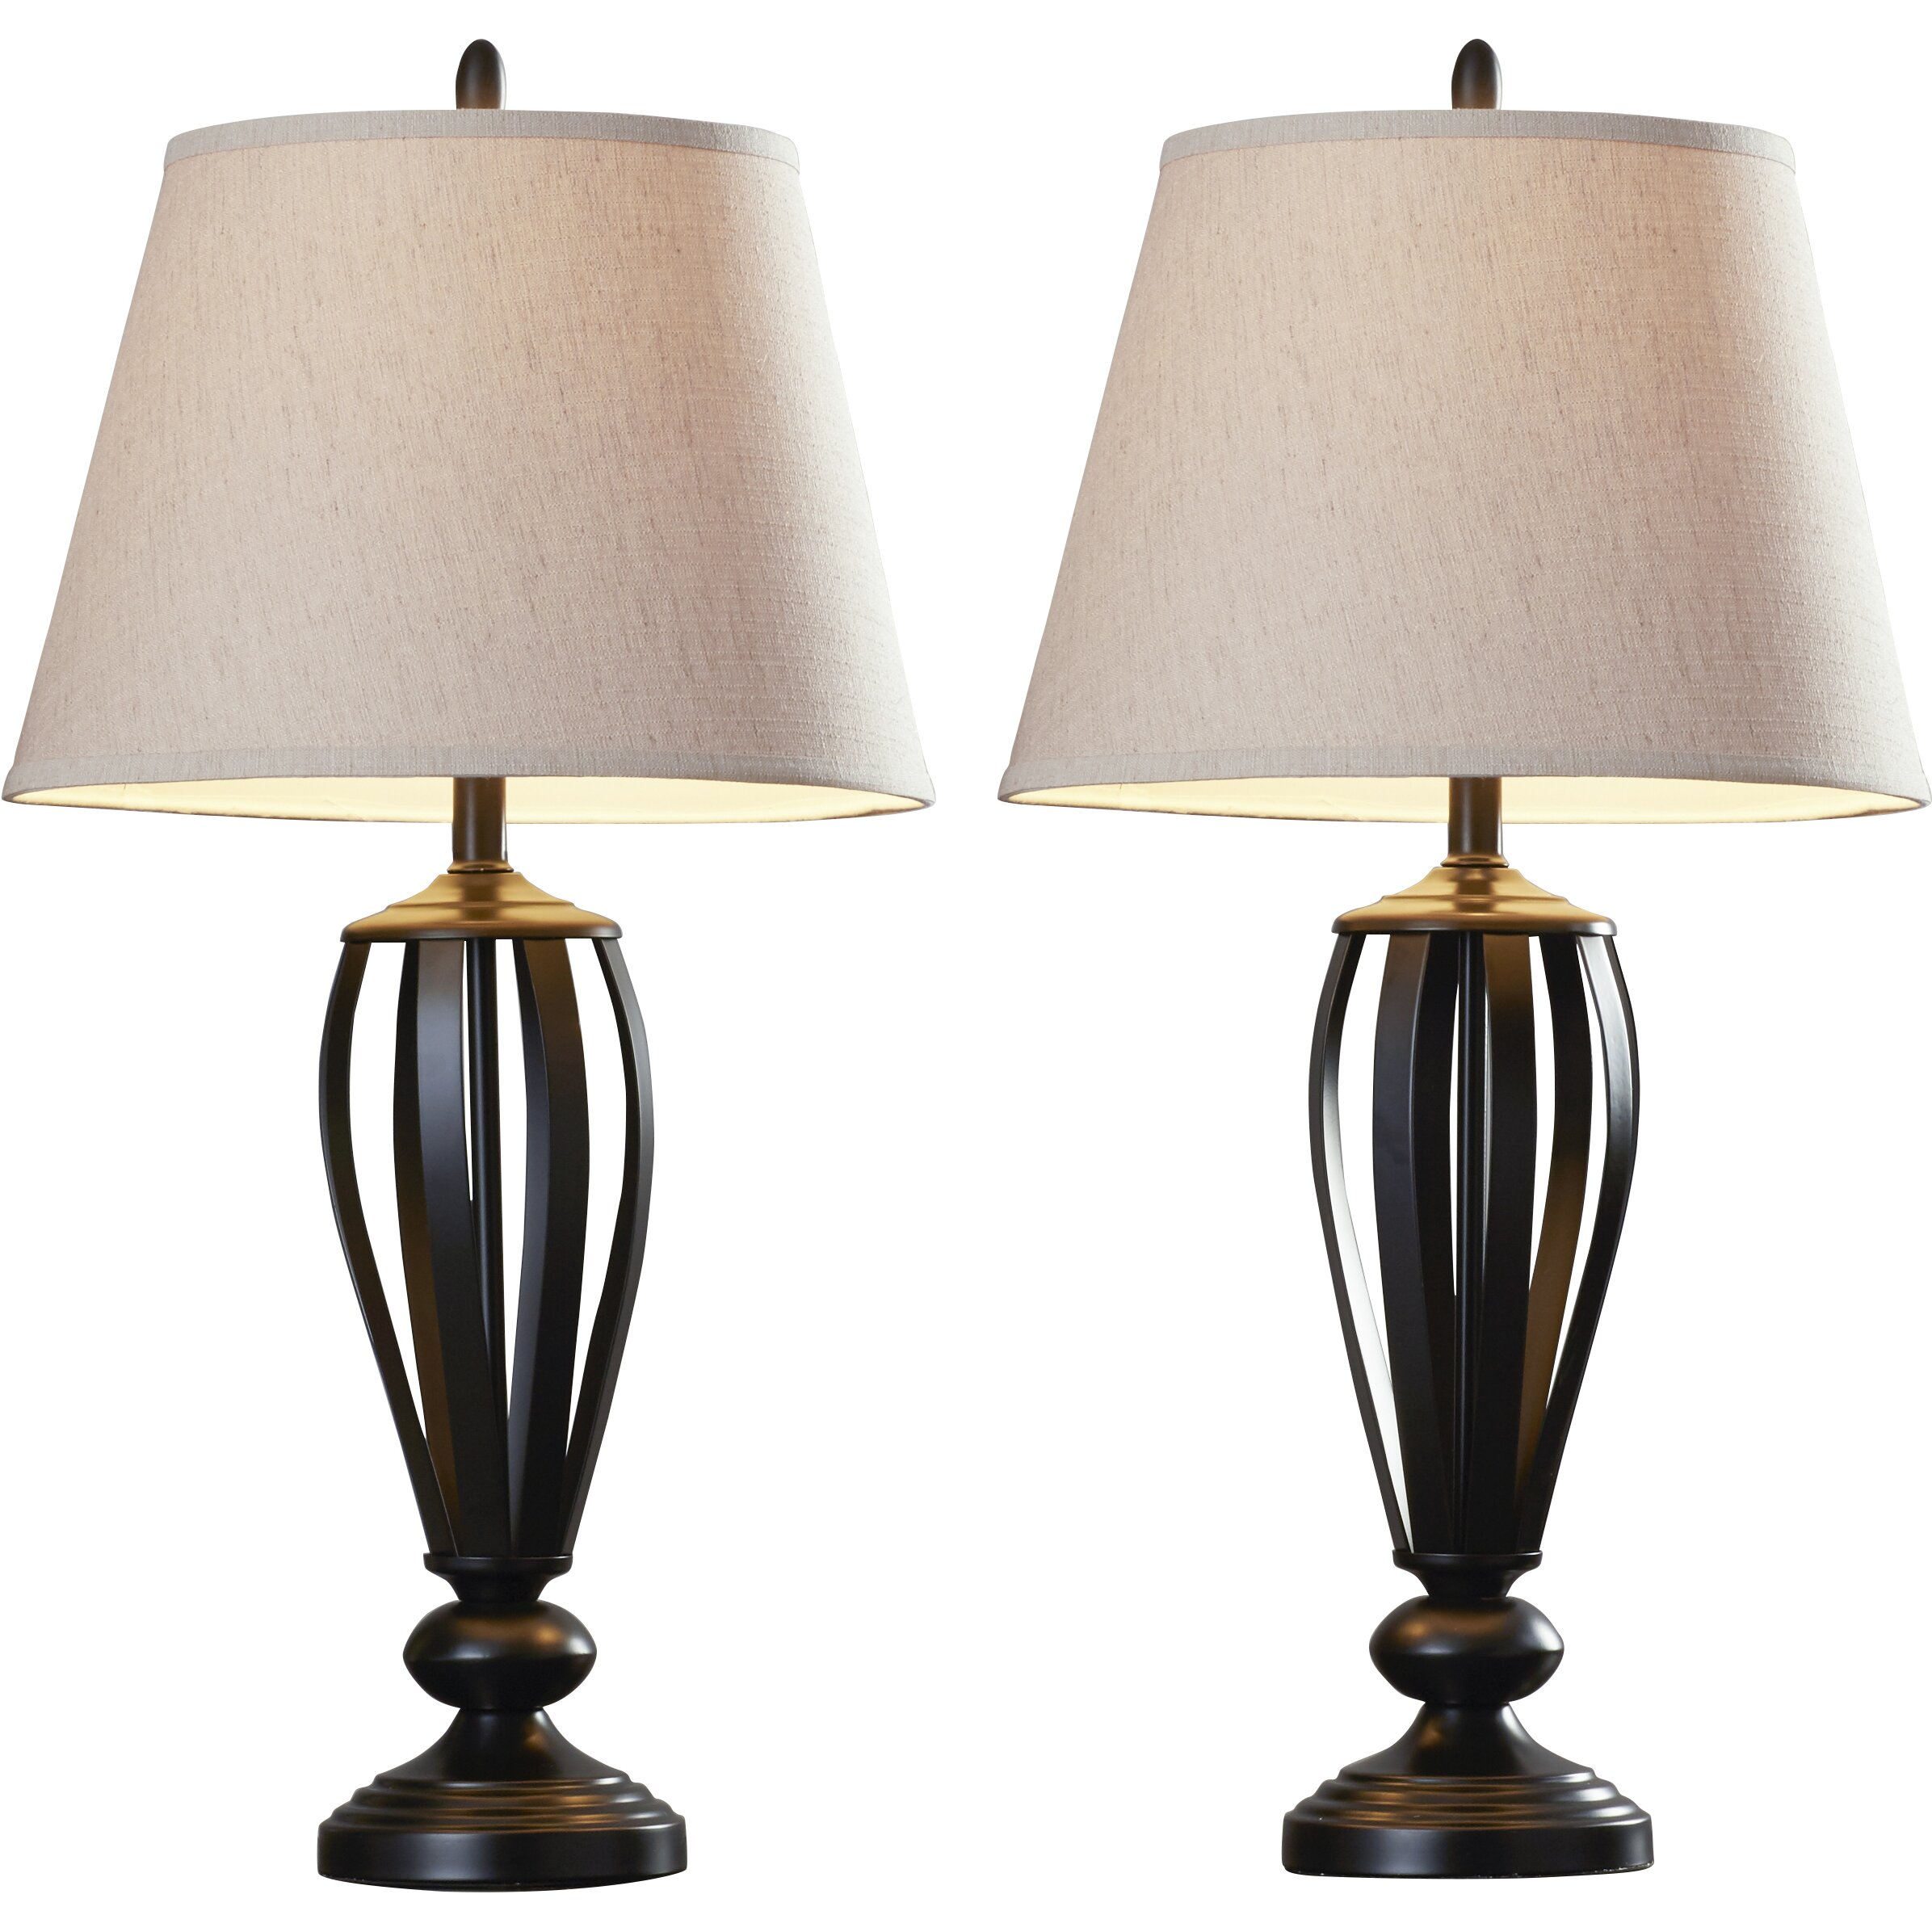 three posts gainseville 29 6 table lamps reviews wayfair. Black Bedroom Furniture Sets. Home Design Ideas